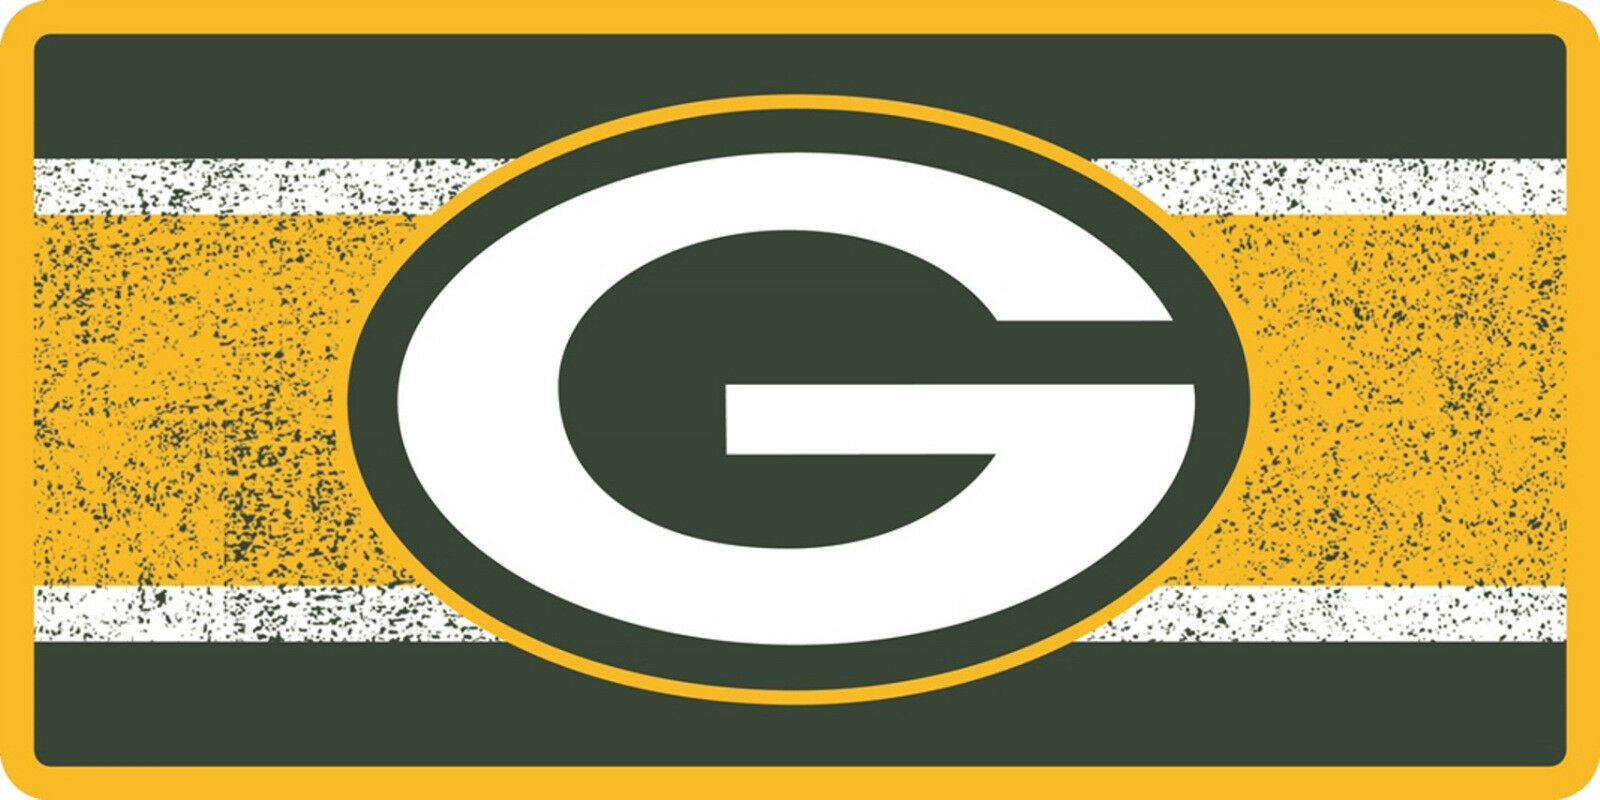 Green Bay Packers Printed MEGA Style Deluxe Laser Acrylic License Plate Tag Football